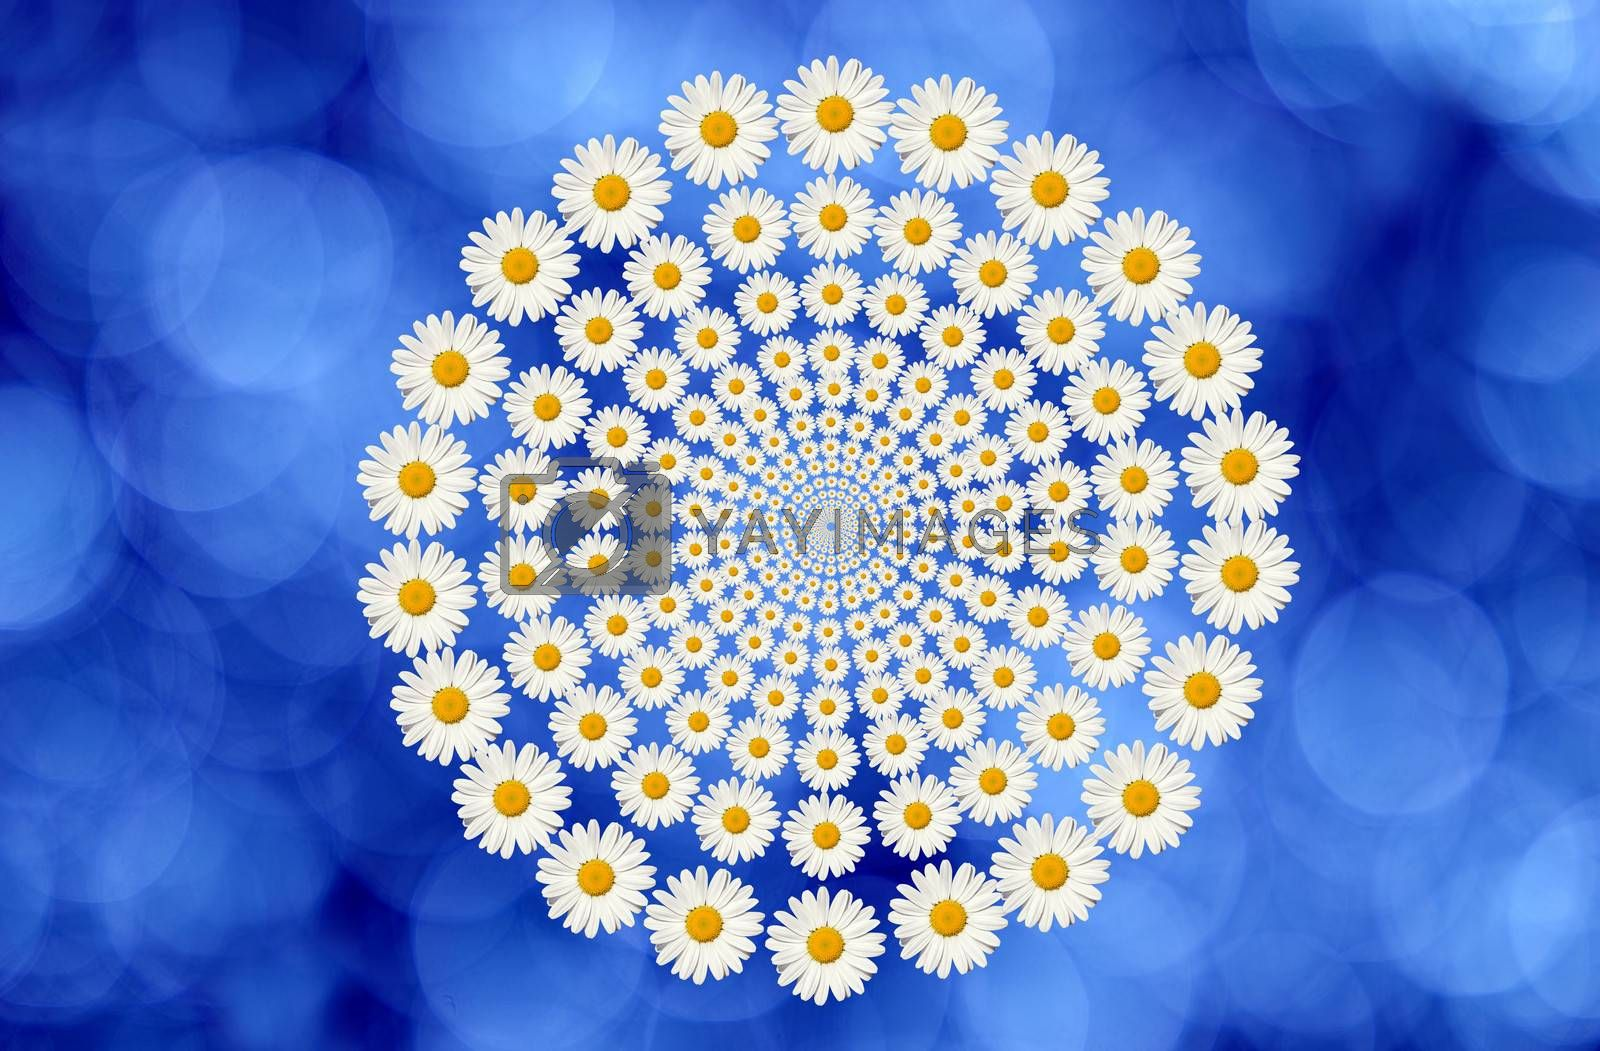 daisies circle on blue background